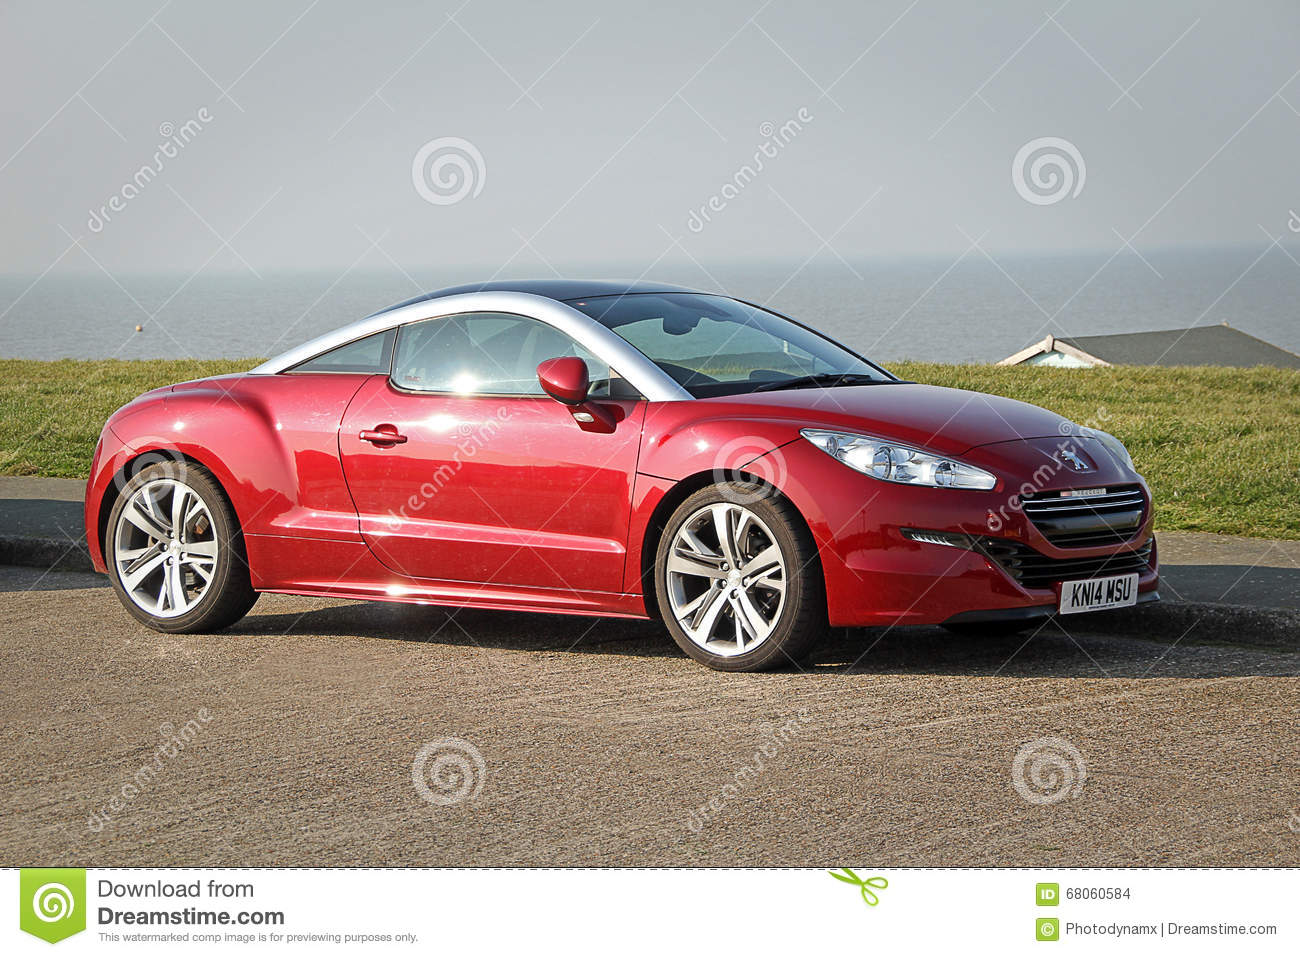 peugeot rcz coupe editorial stock image image of autos 68060584. Black Bedroom Furniture Sets. Home Design Ideas